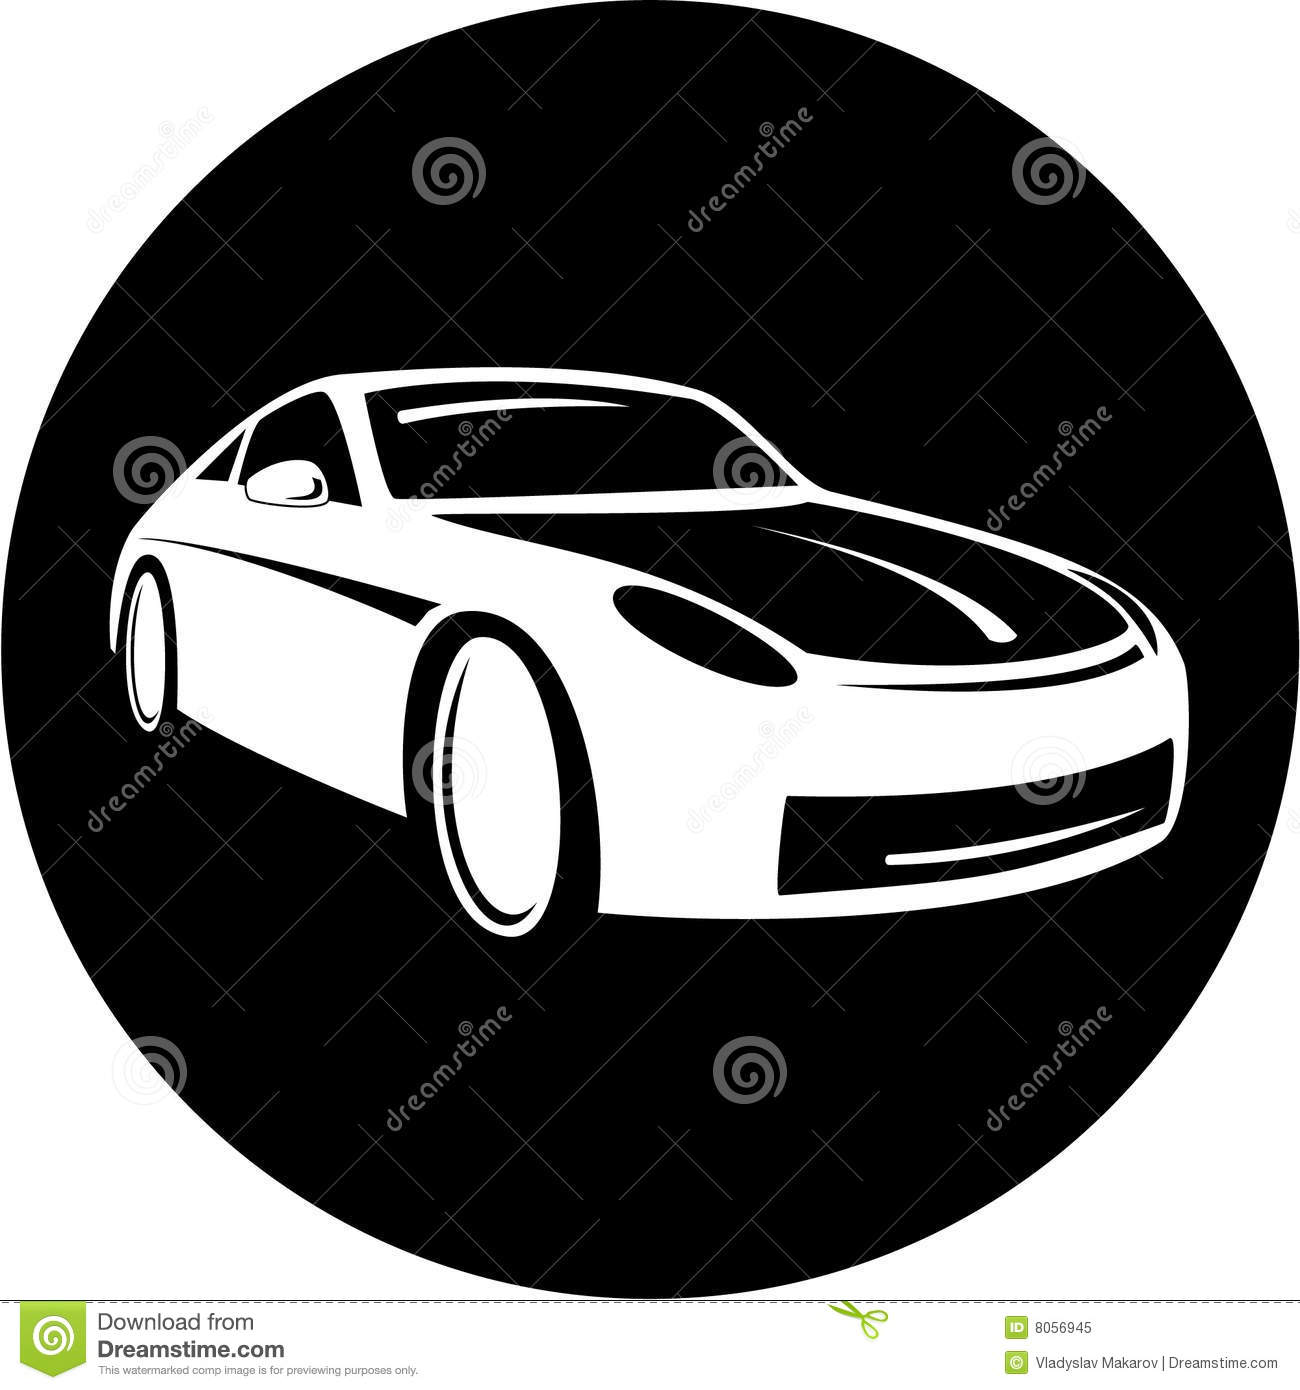 Black and White Car Icons Free